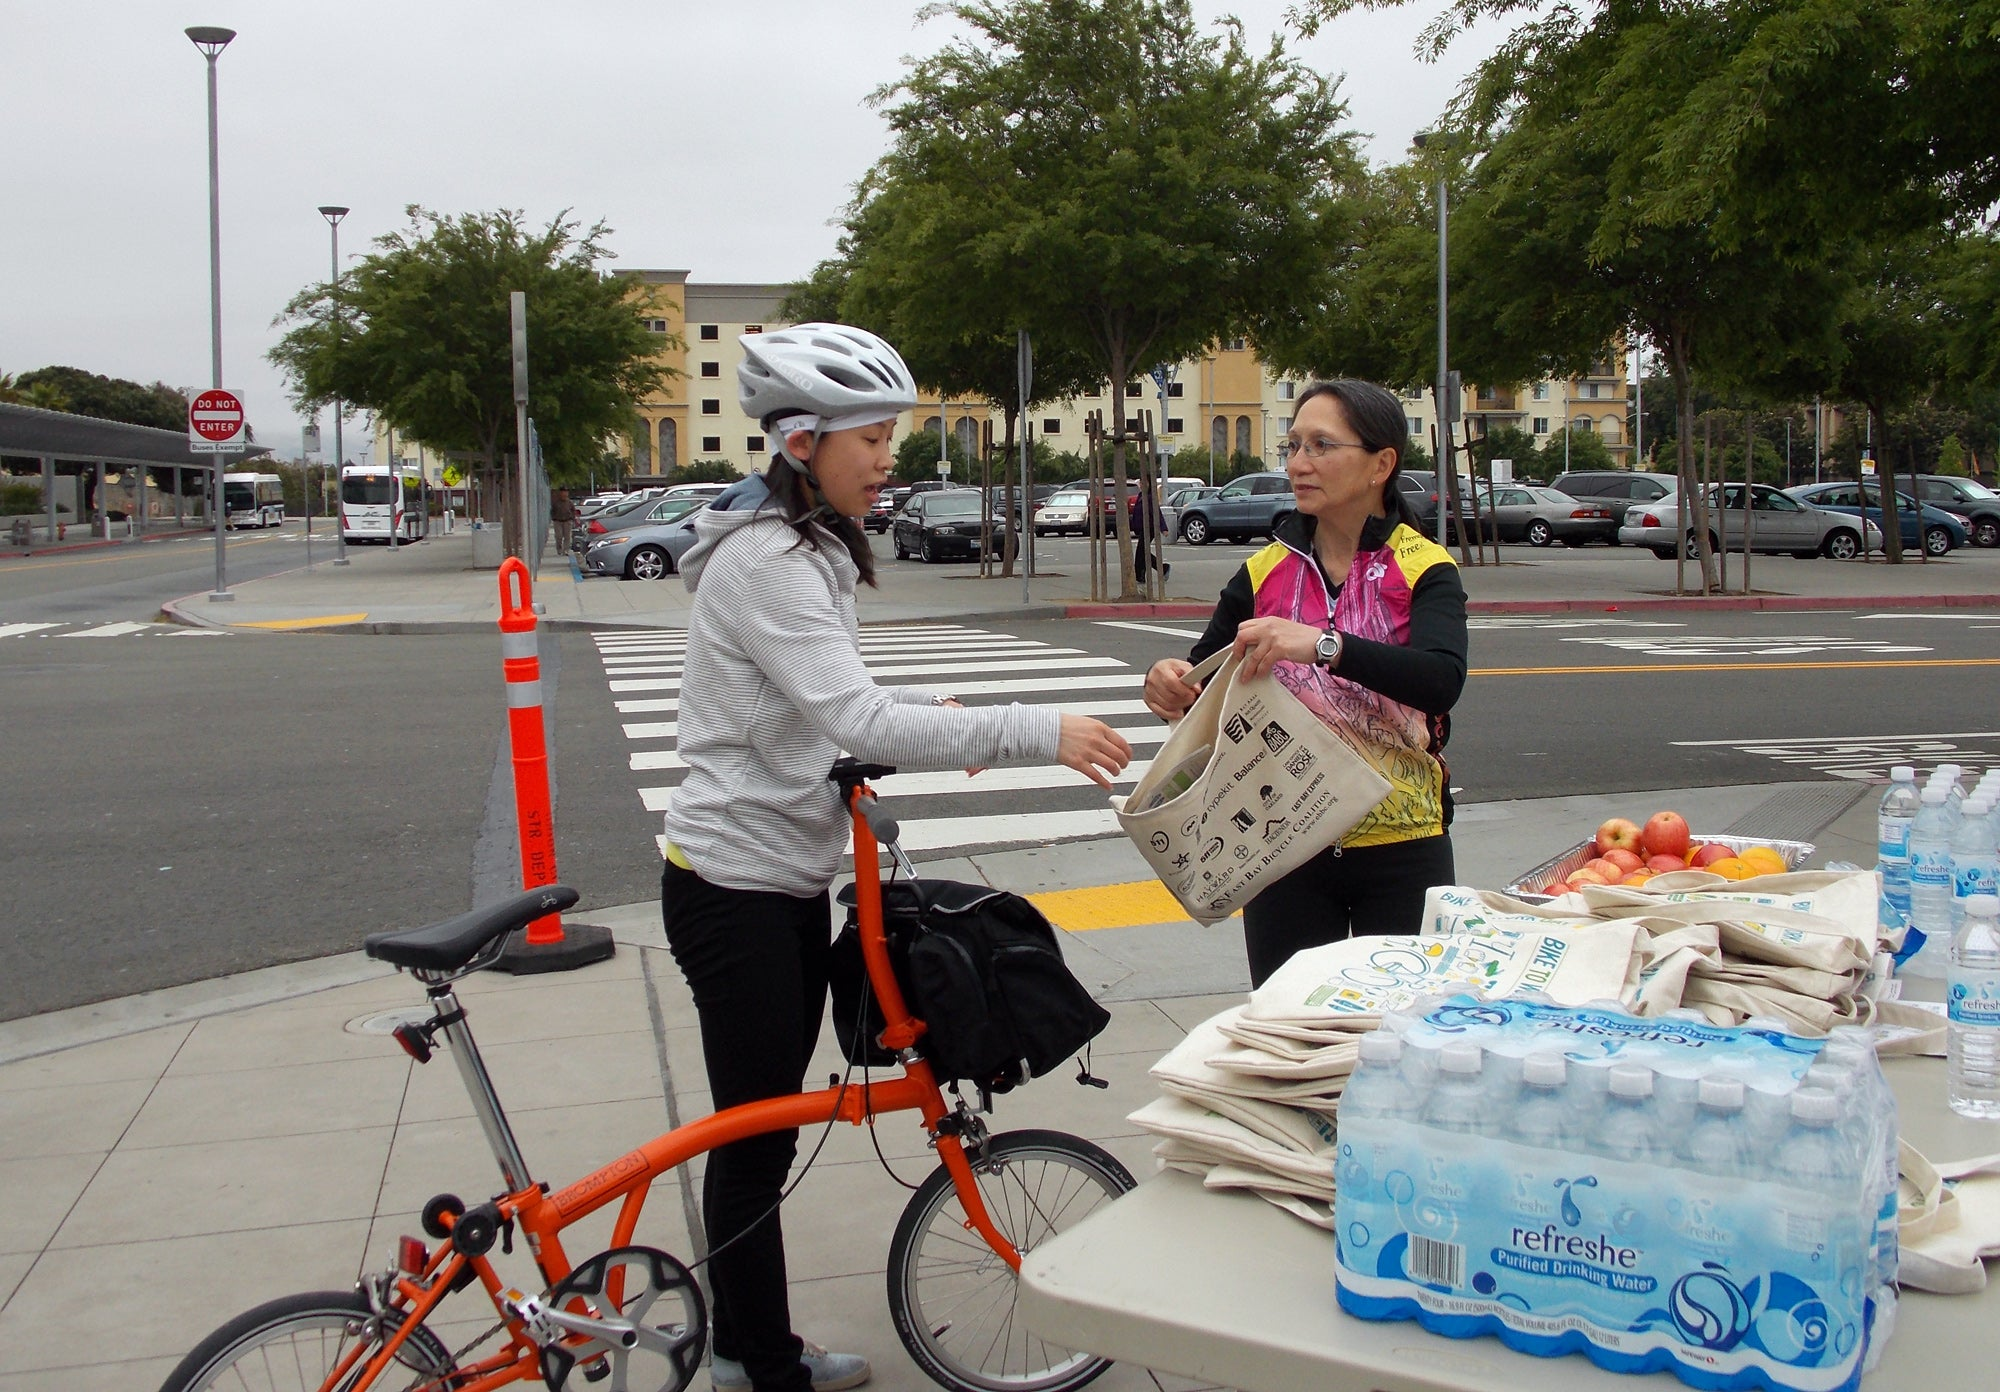 Bike to Work Day messenger bags and healthy fruit snacks were the offerings at the Union City BART Energizer Station.